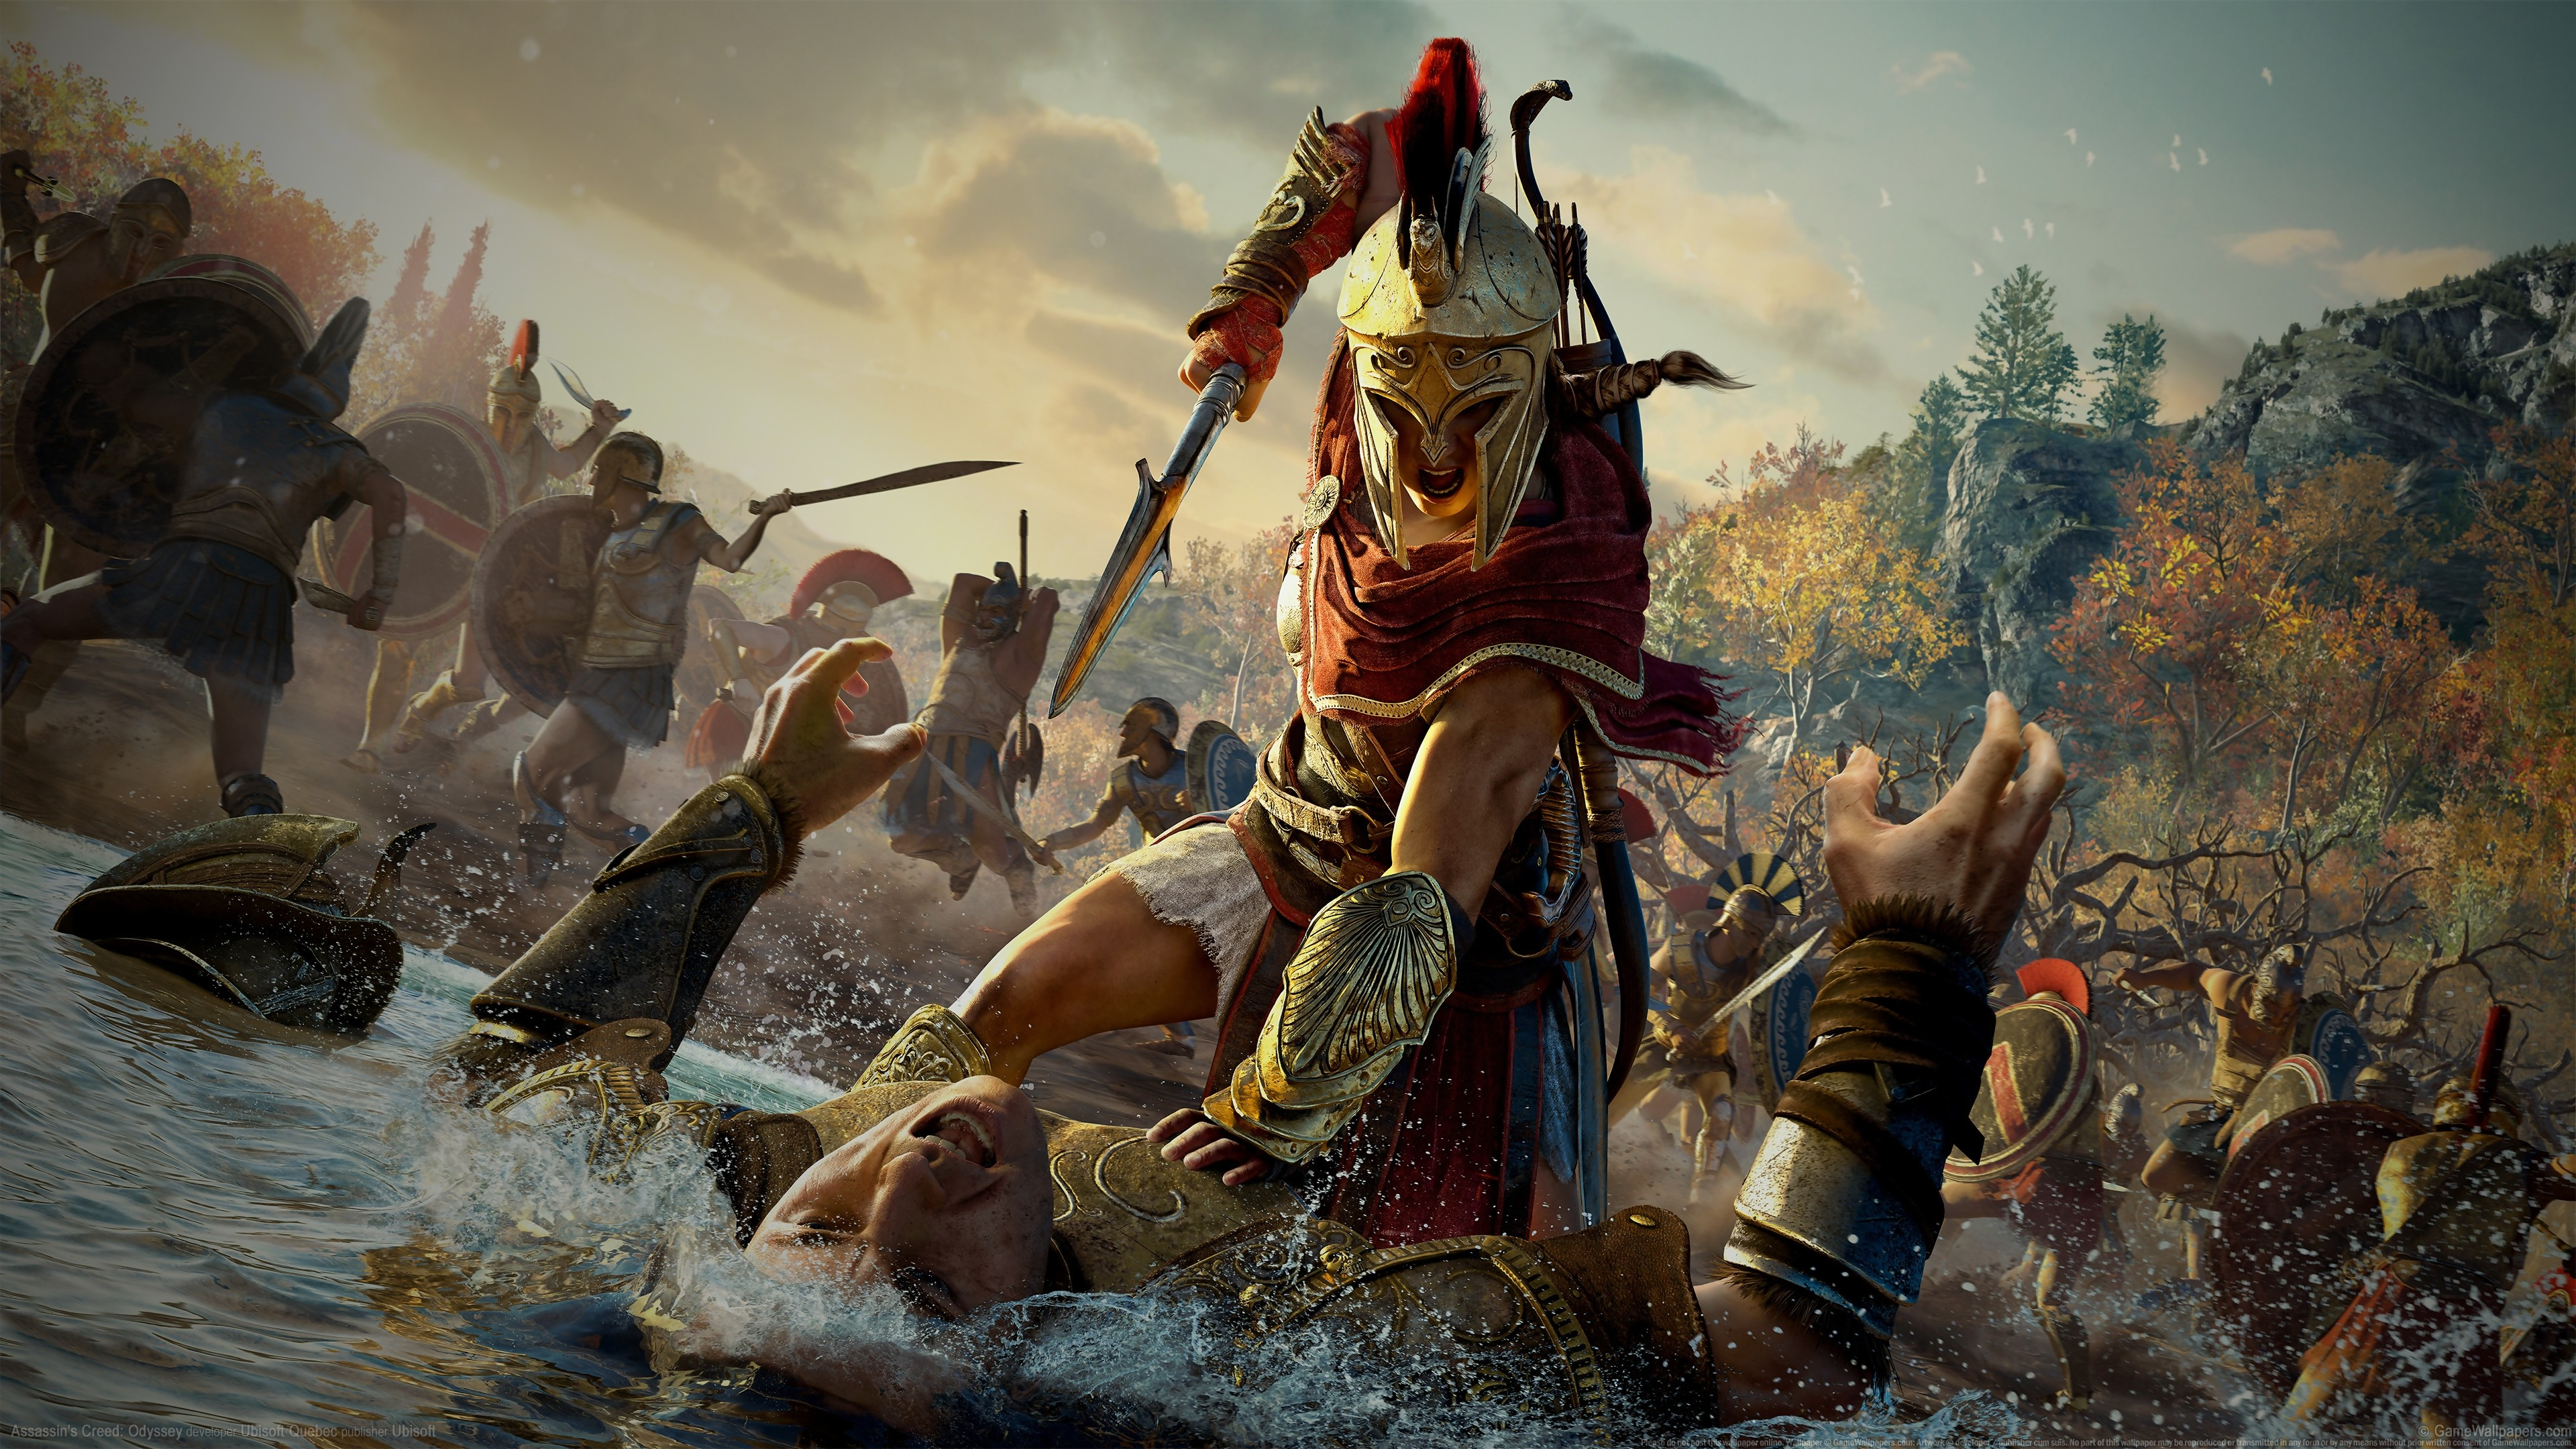 Next Assassin's Creed Vikings is on the way